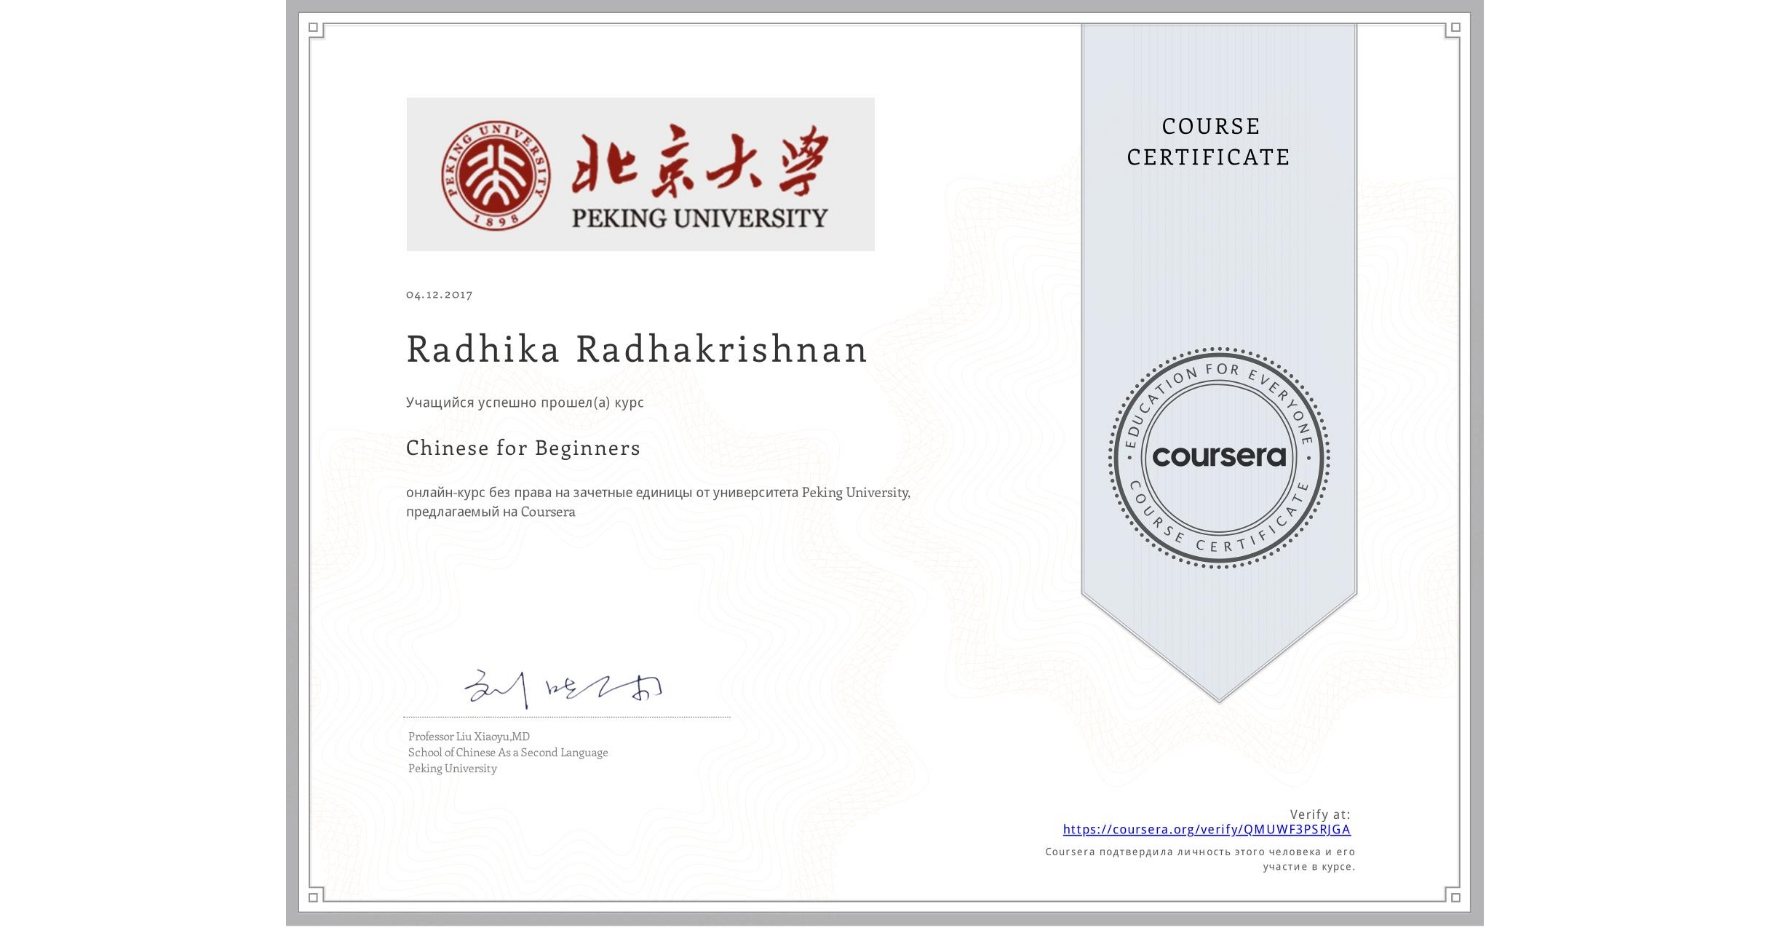 View certificate for Radhika Radhakrishnan, Chinese for Beginners, an online non-credit course authorized by Peking University and offered through Coursera